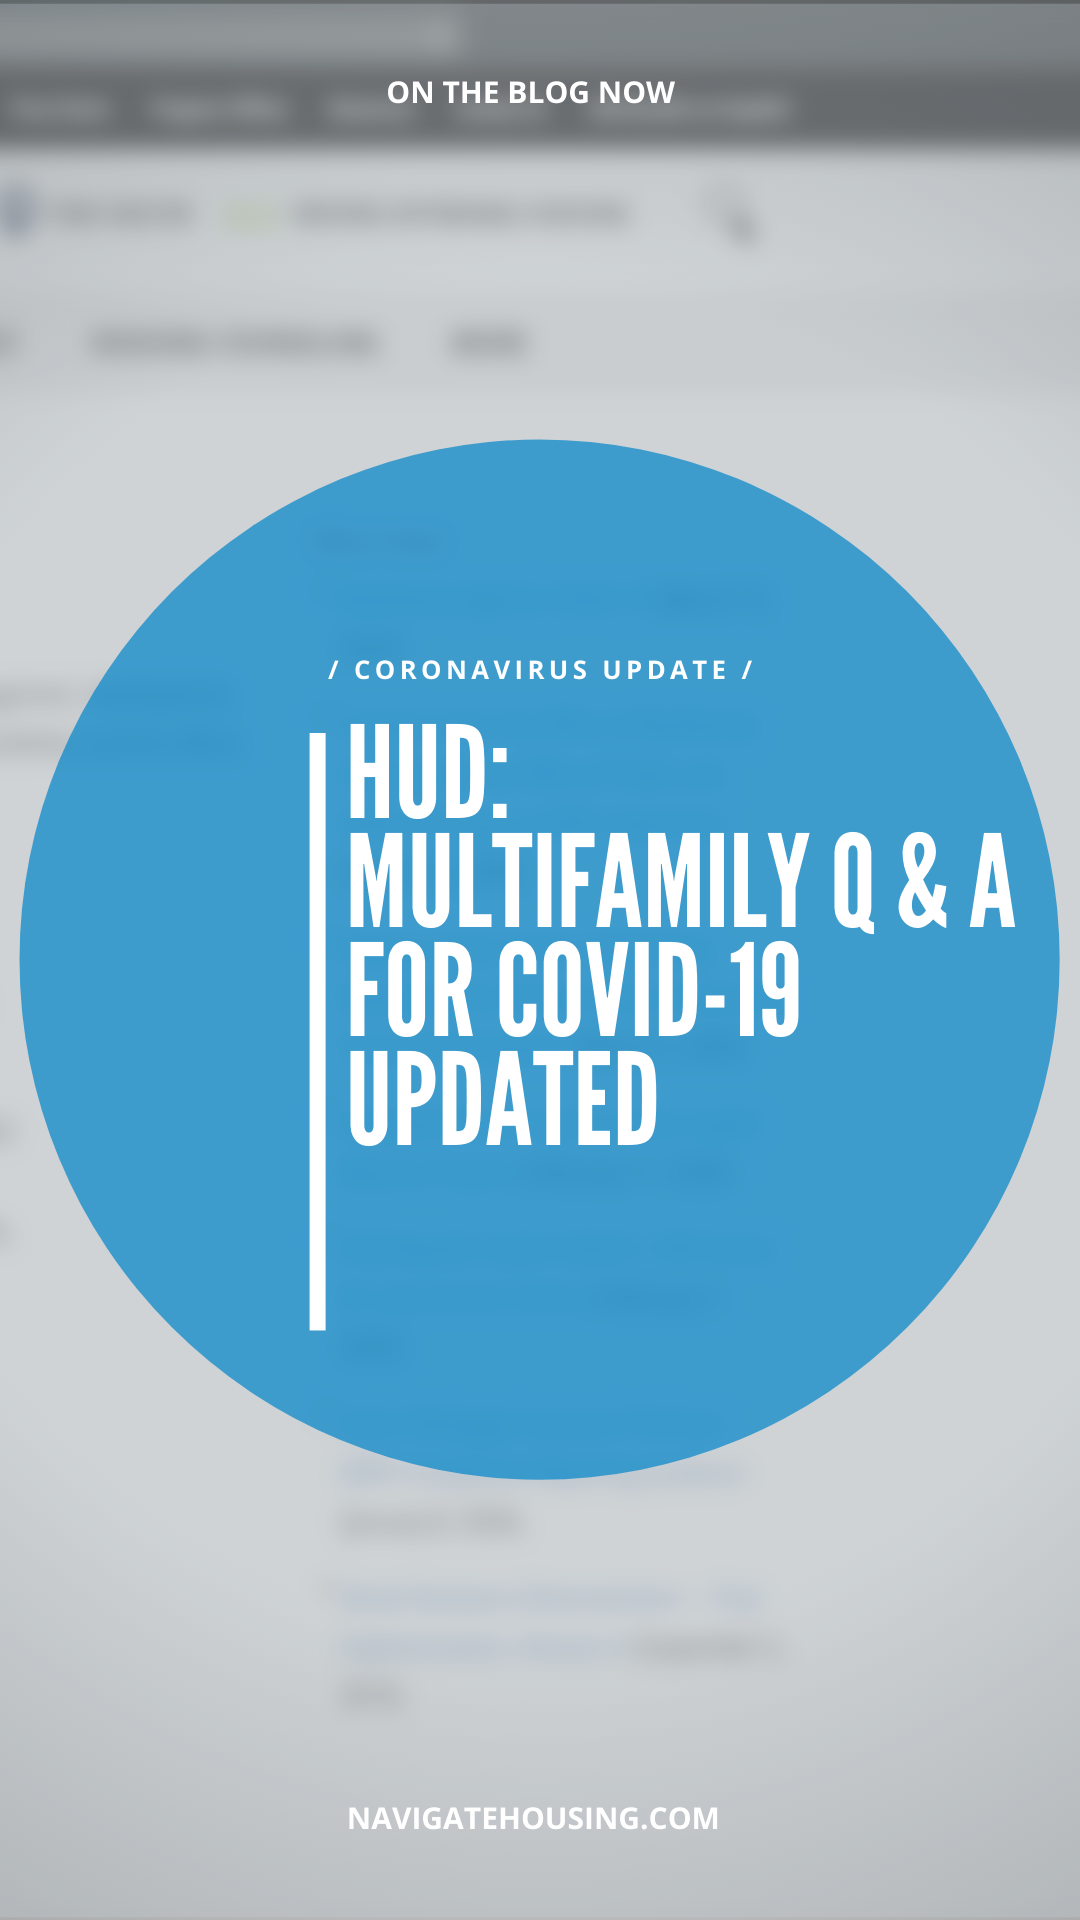 Multifamily Q & A for COVID-19